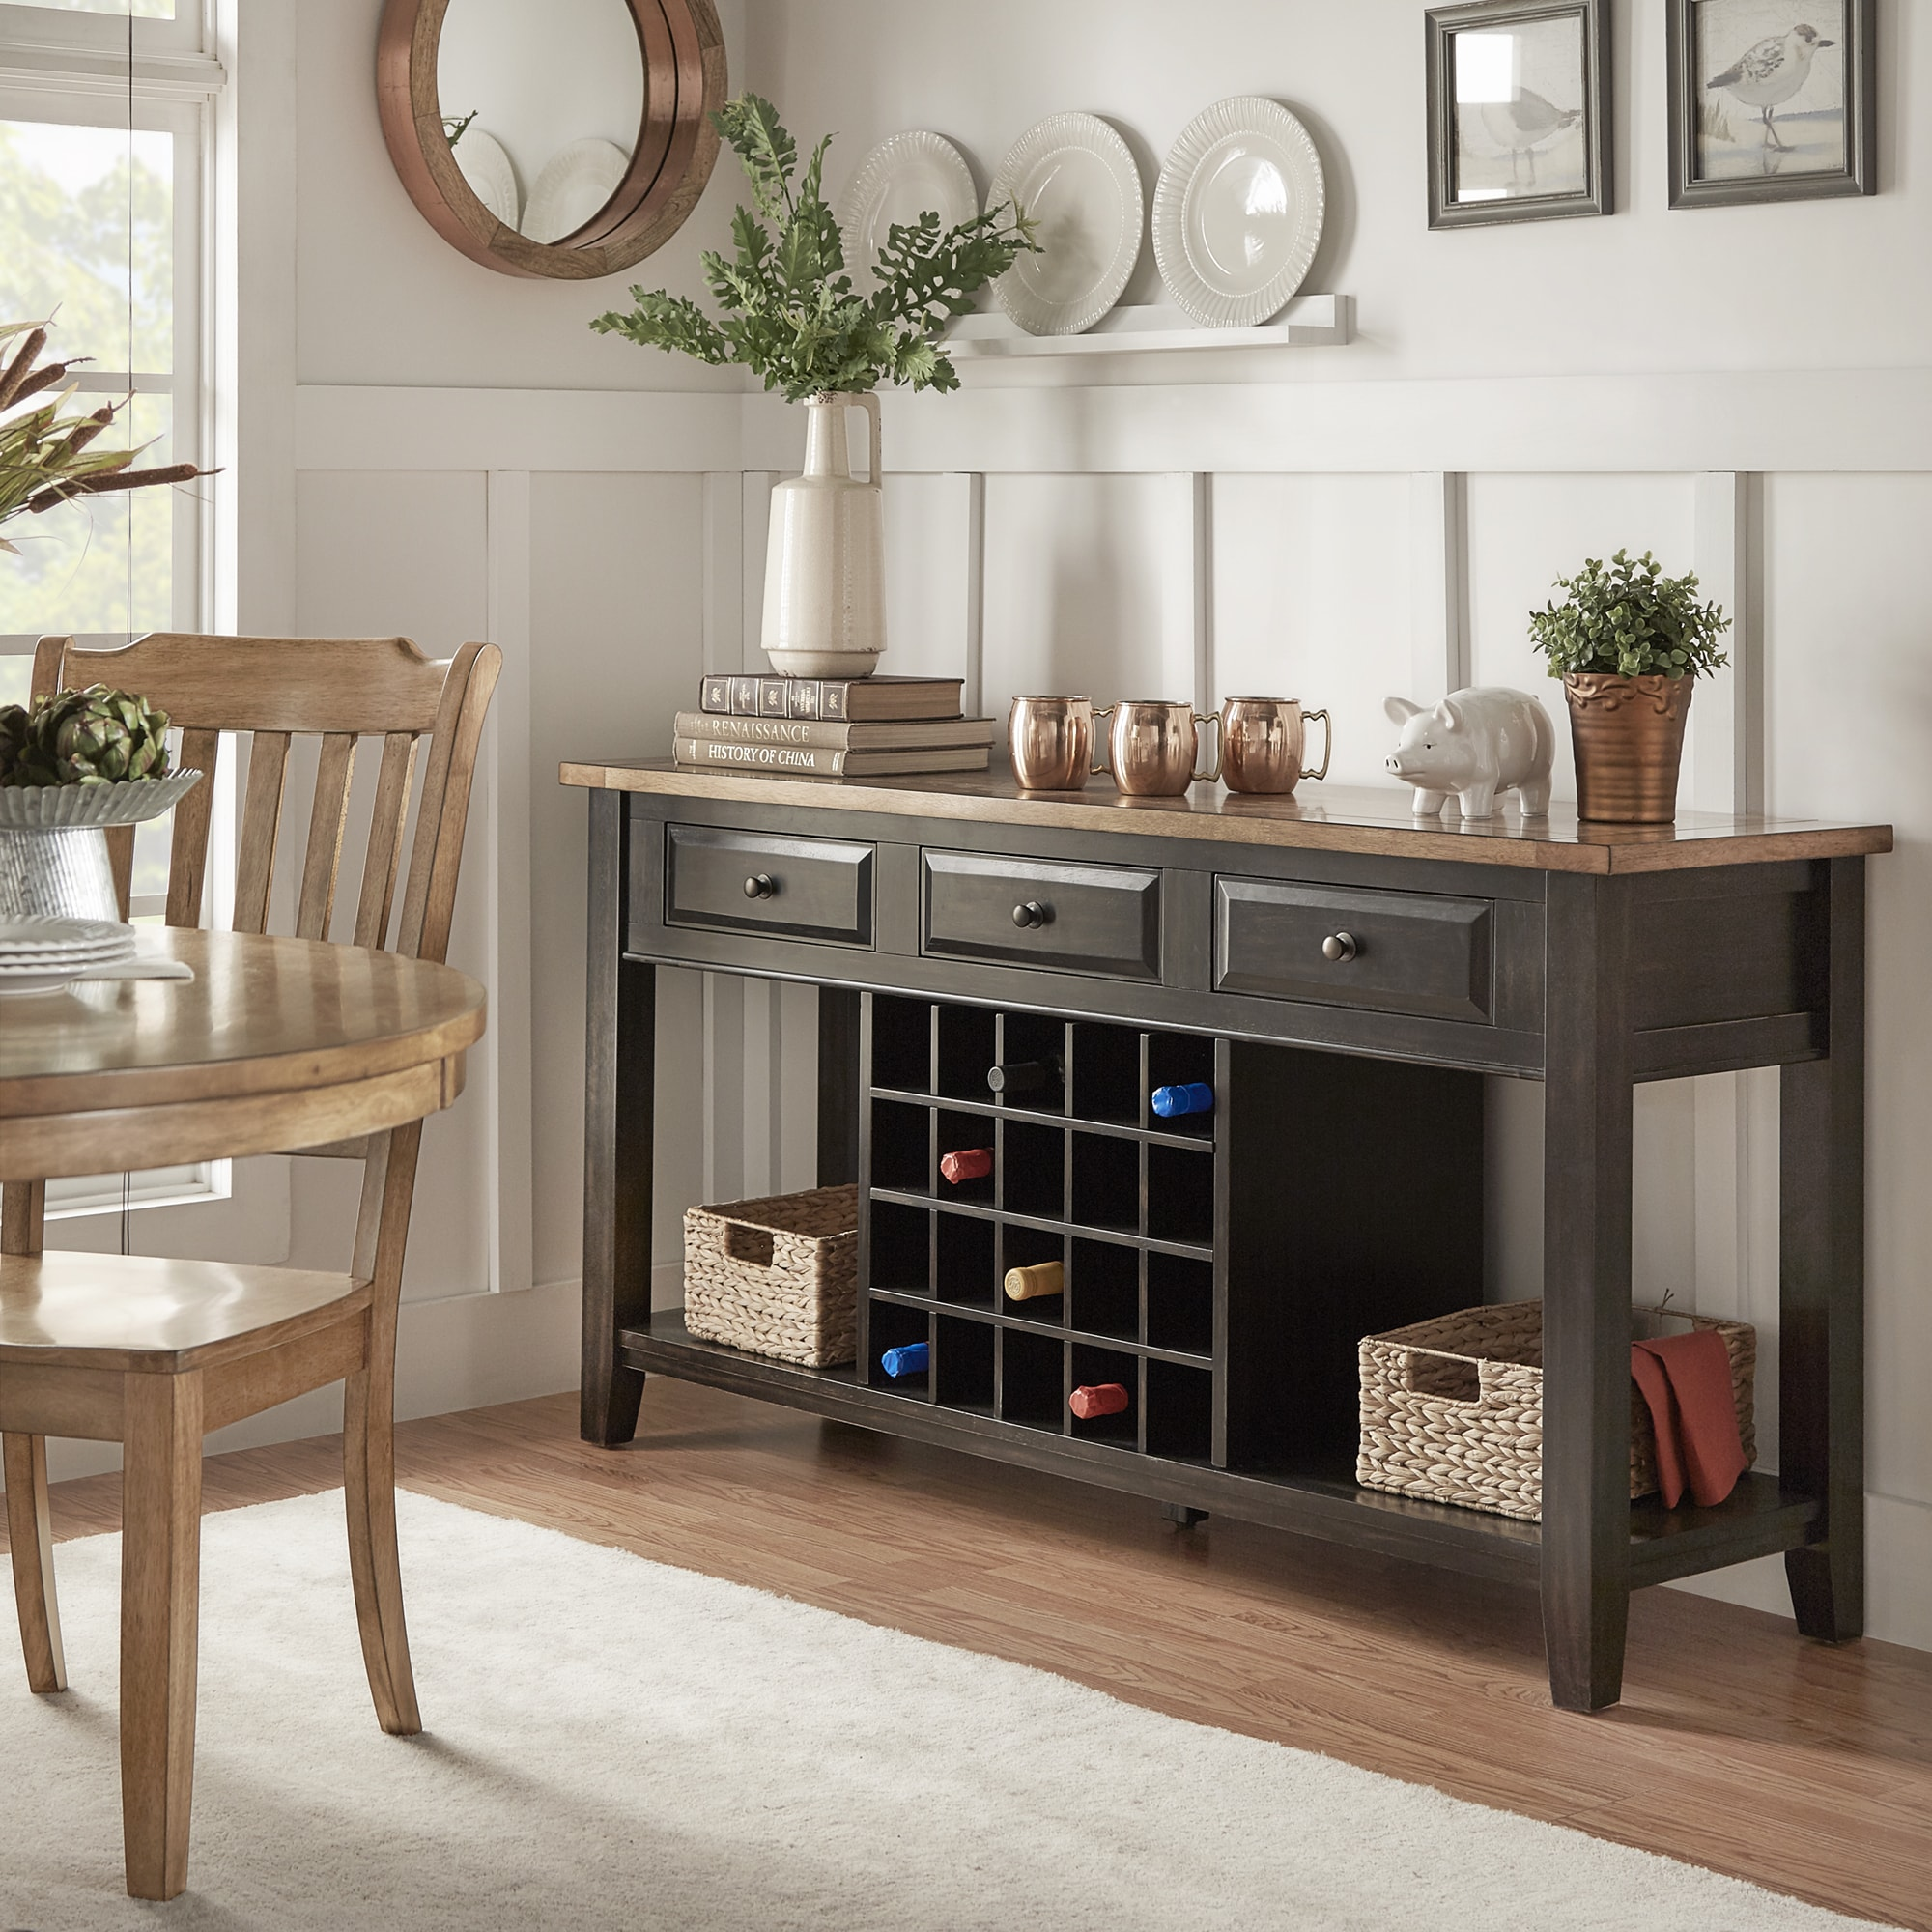 Eleanor Two-Tone Wood Wine Rack Buffet Server by iNSPIRE Q Classic - Free  Shipping Today - Overstock.com - 20163224